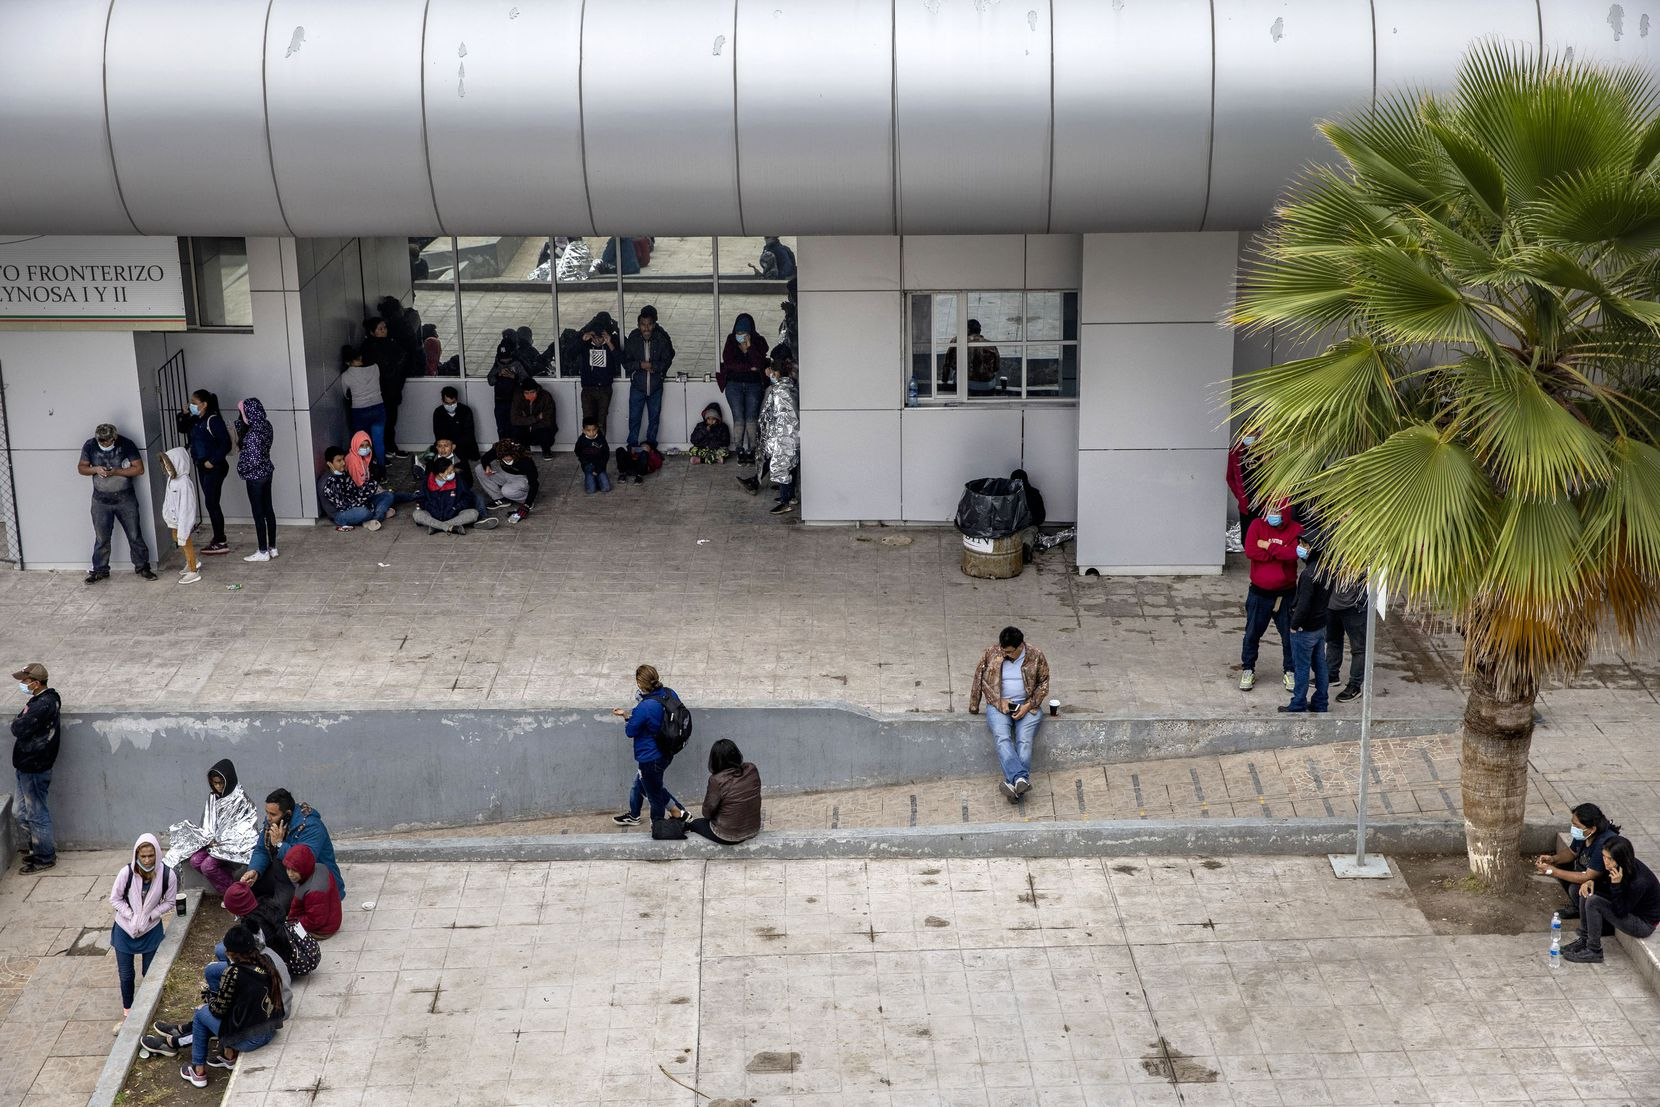 A couple dozen expelled migrant families sit in the plaza near the international bridge leading into the Mexican border city of Reynosa midmorning on Thursday, April 1, 2021.